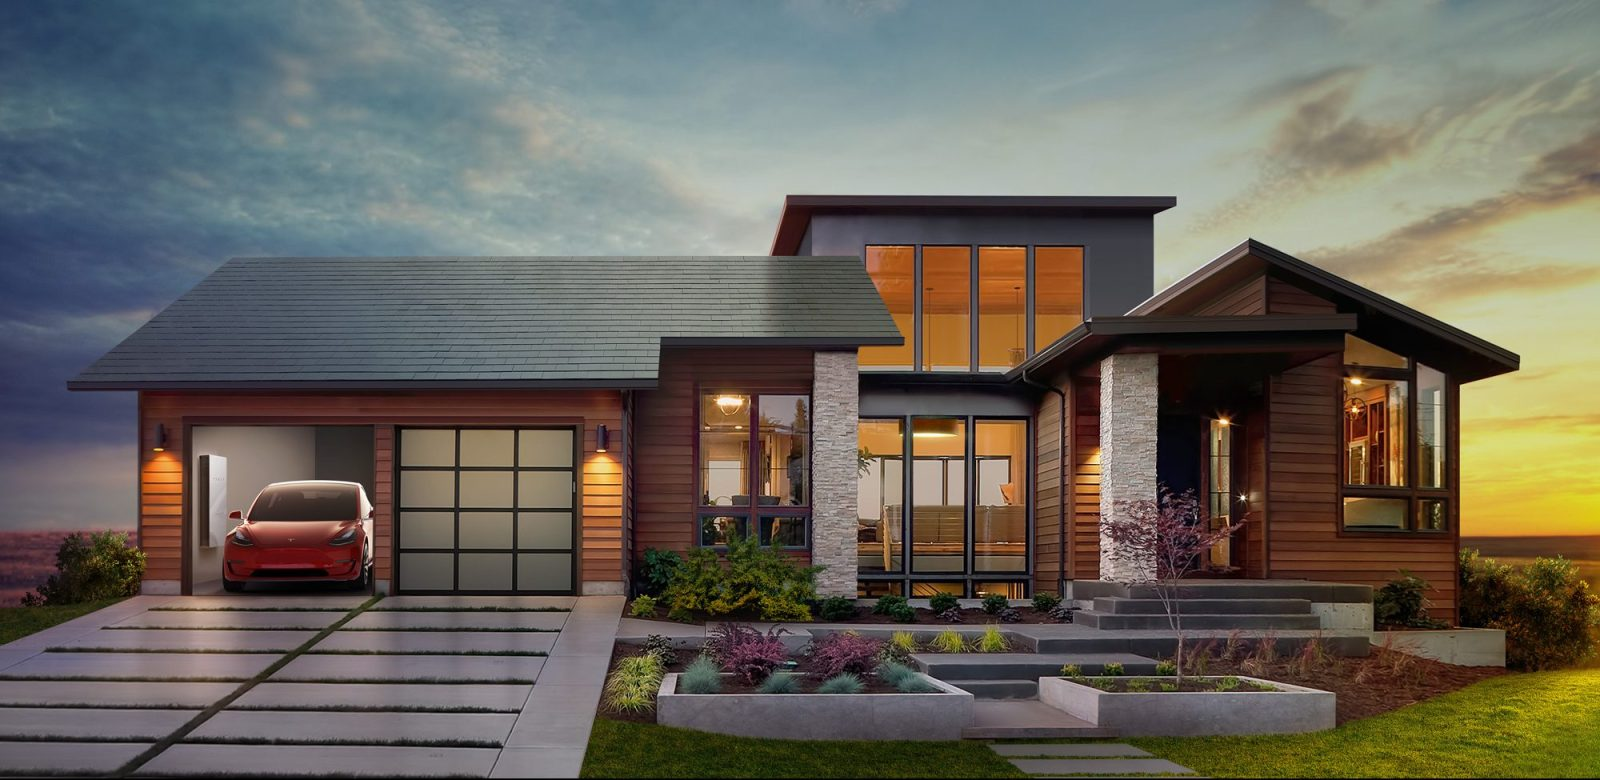 Tesla is opening Solar Roof orders today, starting with black smooth and textured tiles